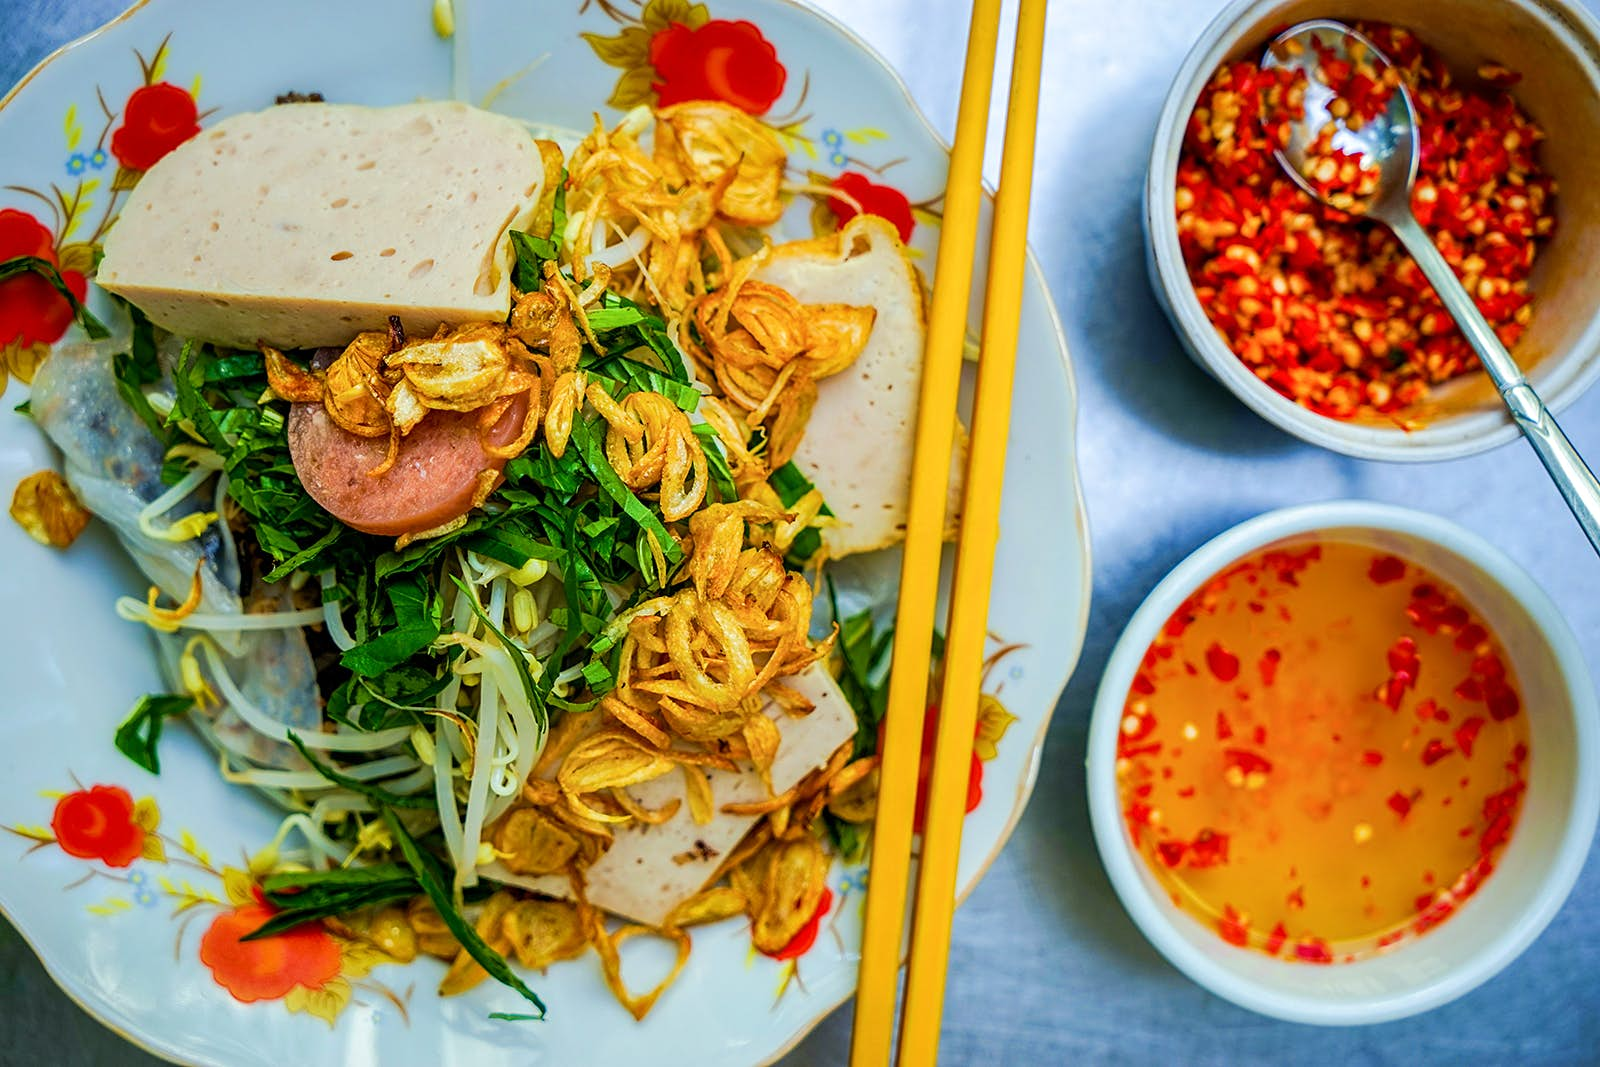 A close-up of a bowl of bánh cuốn, with two small bowls of orange sauces © James Pham / Lonely Planet